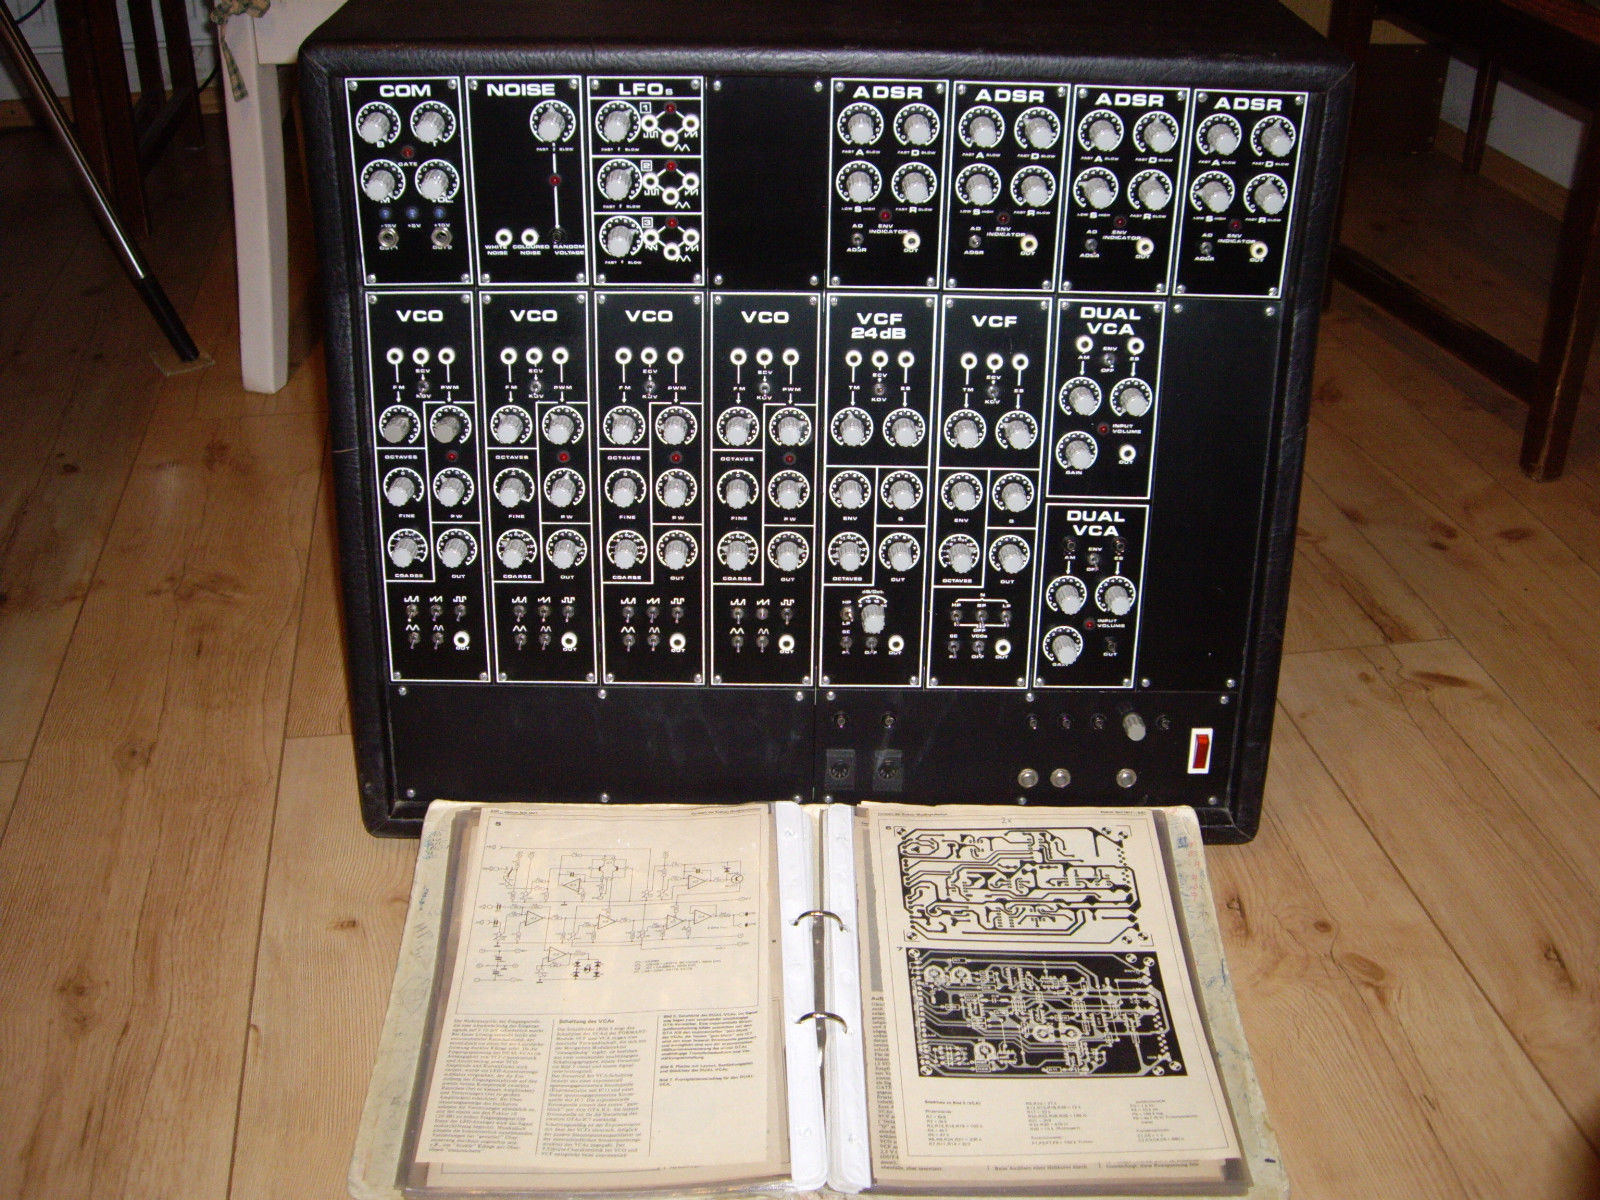 Matrixsynth Elektor Formant Vintage Modular Synthesizer Synth Schematics Vco 3